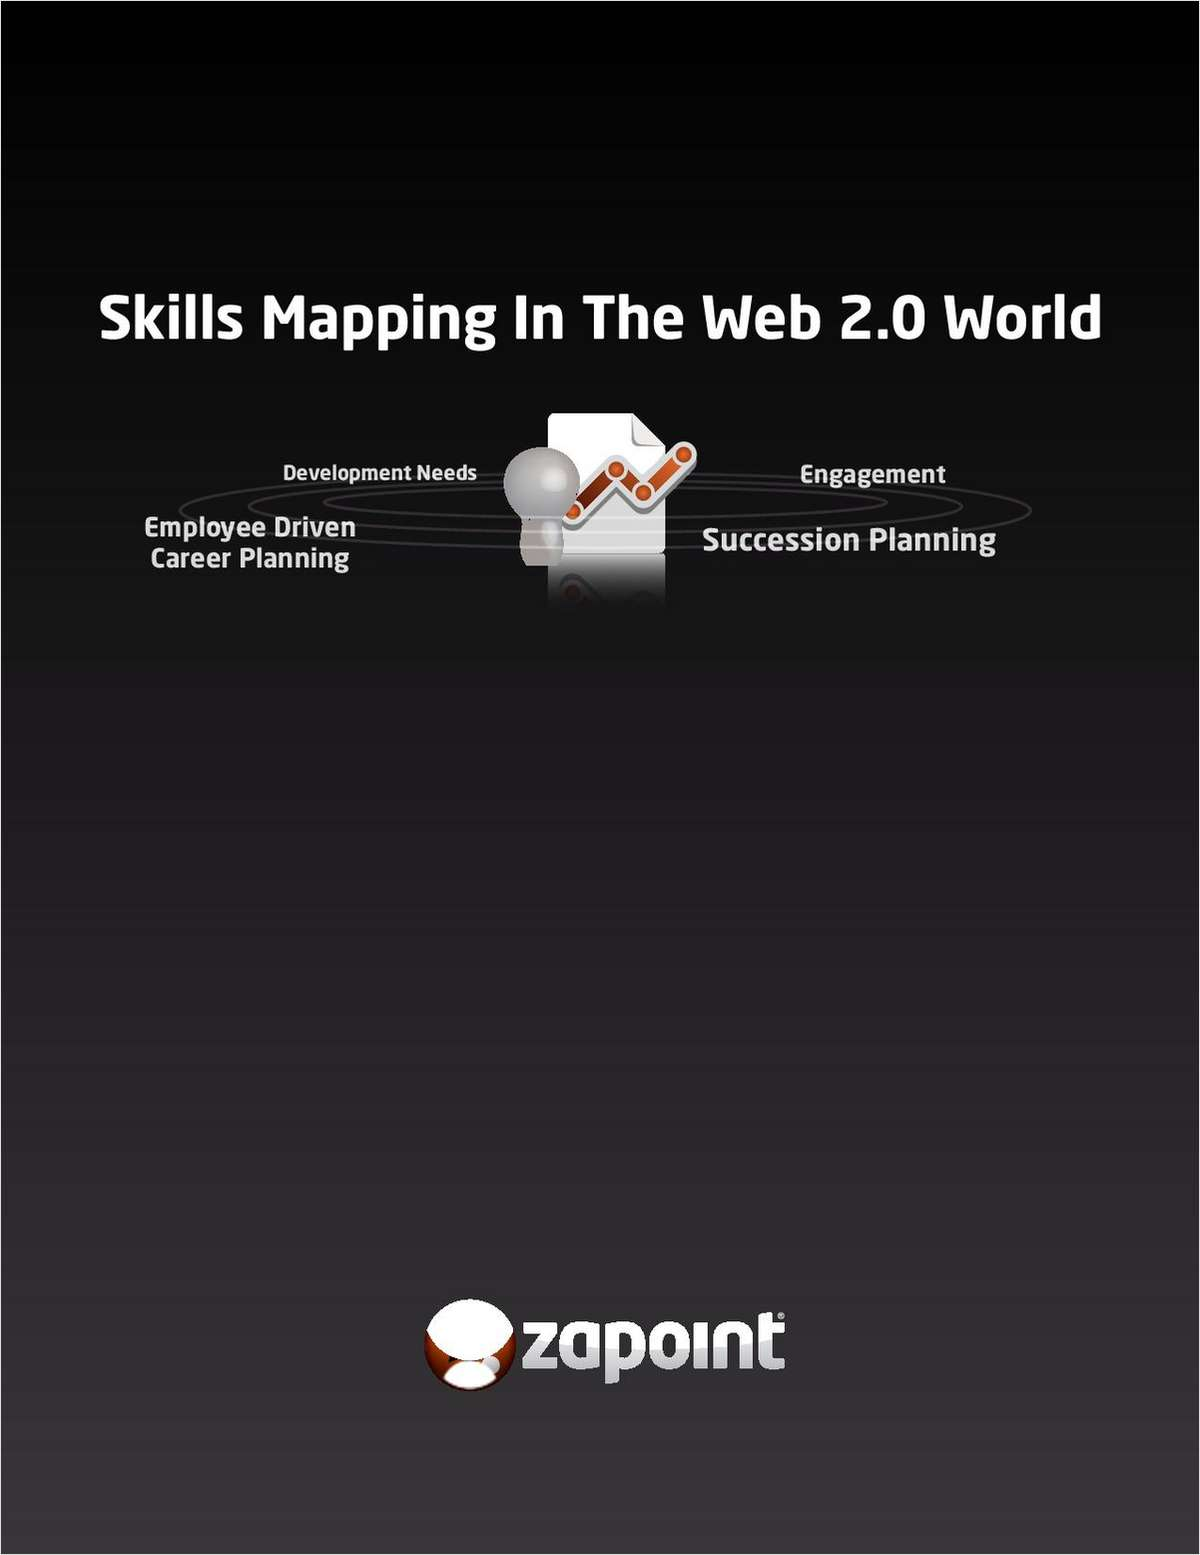 SkillsMapping in a Web 2.0 World